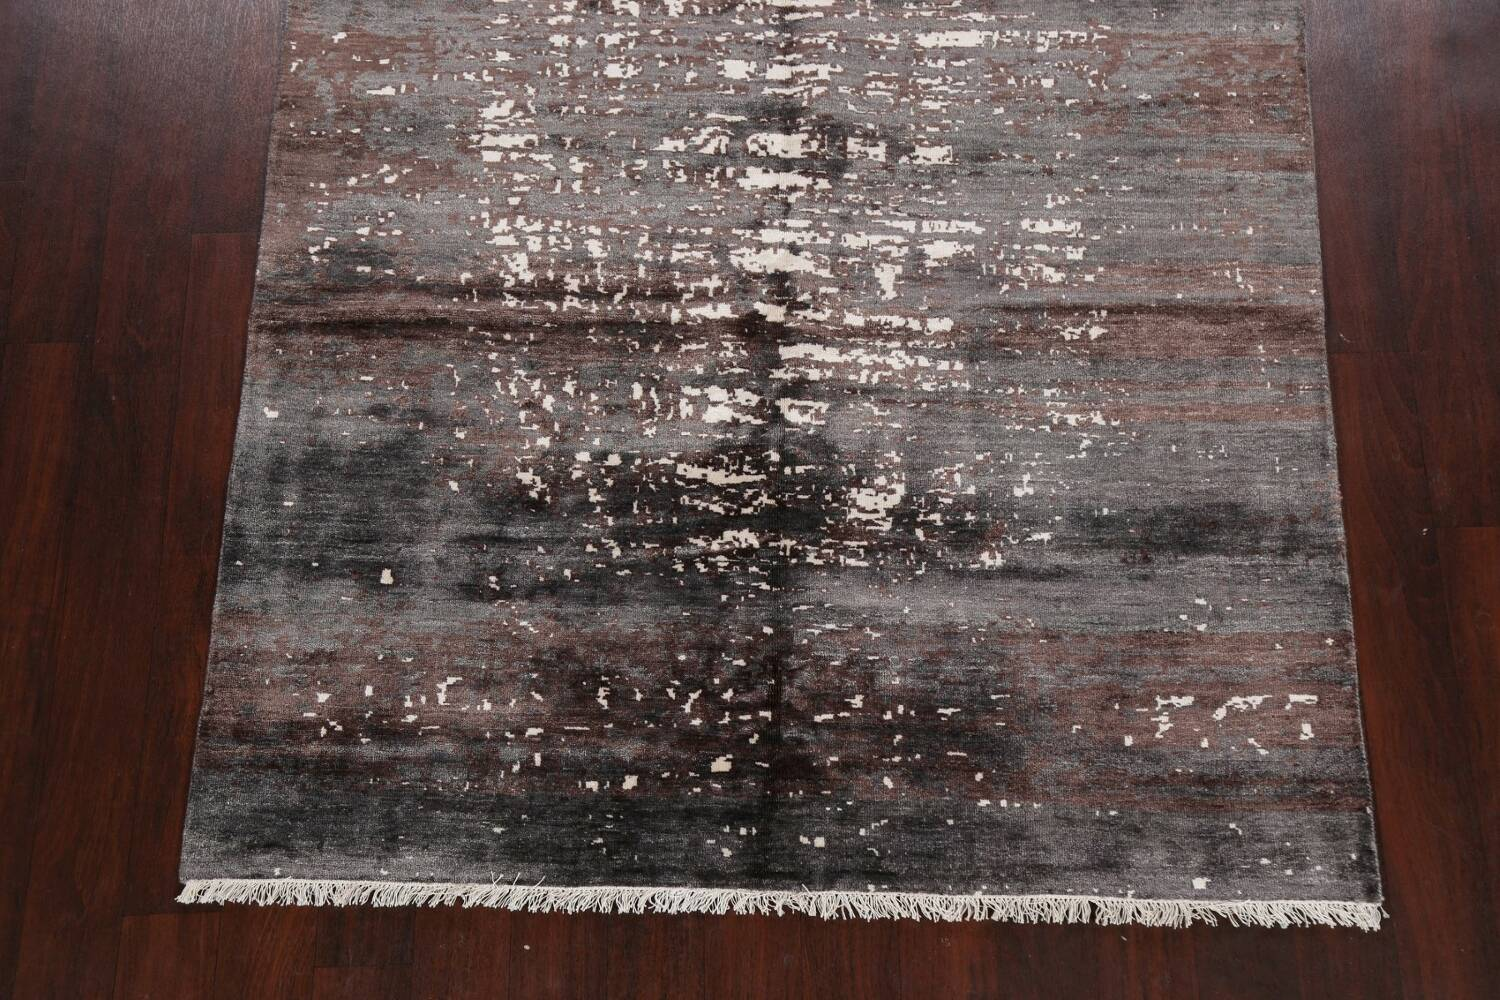 Artistic Contemporary Abstract Oriental Area Rug 5x7 image 8